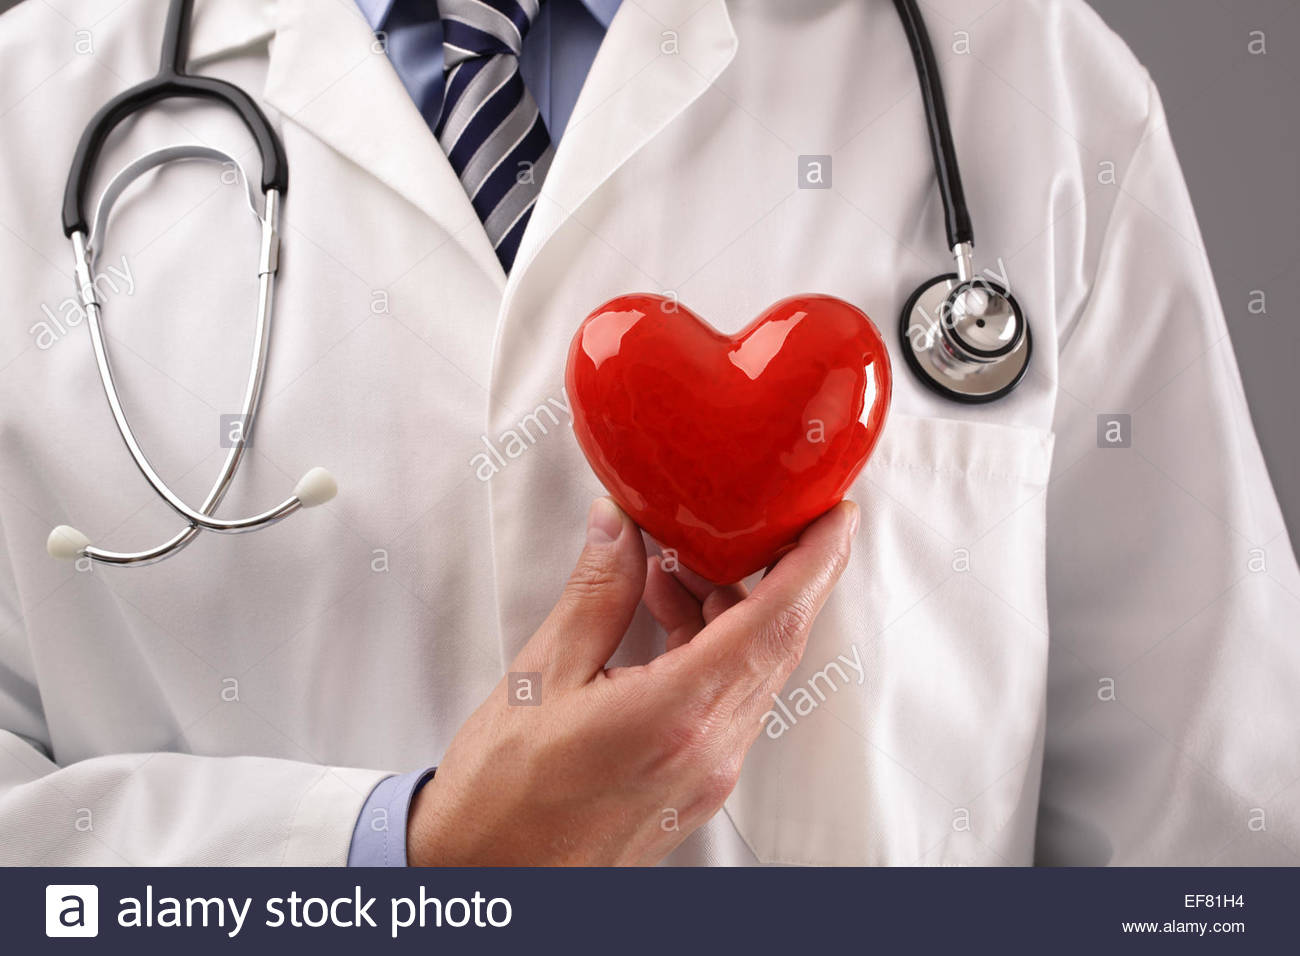 Doctor holding heart against chest - Stock Image